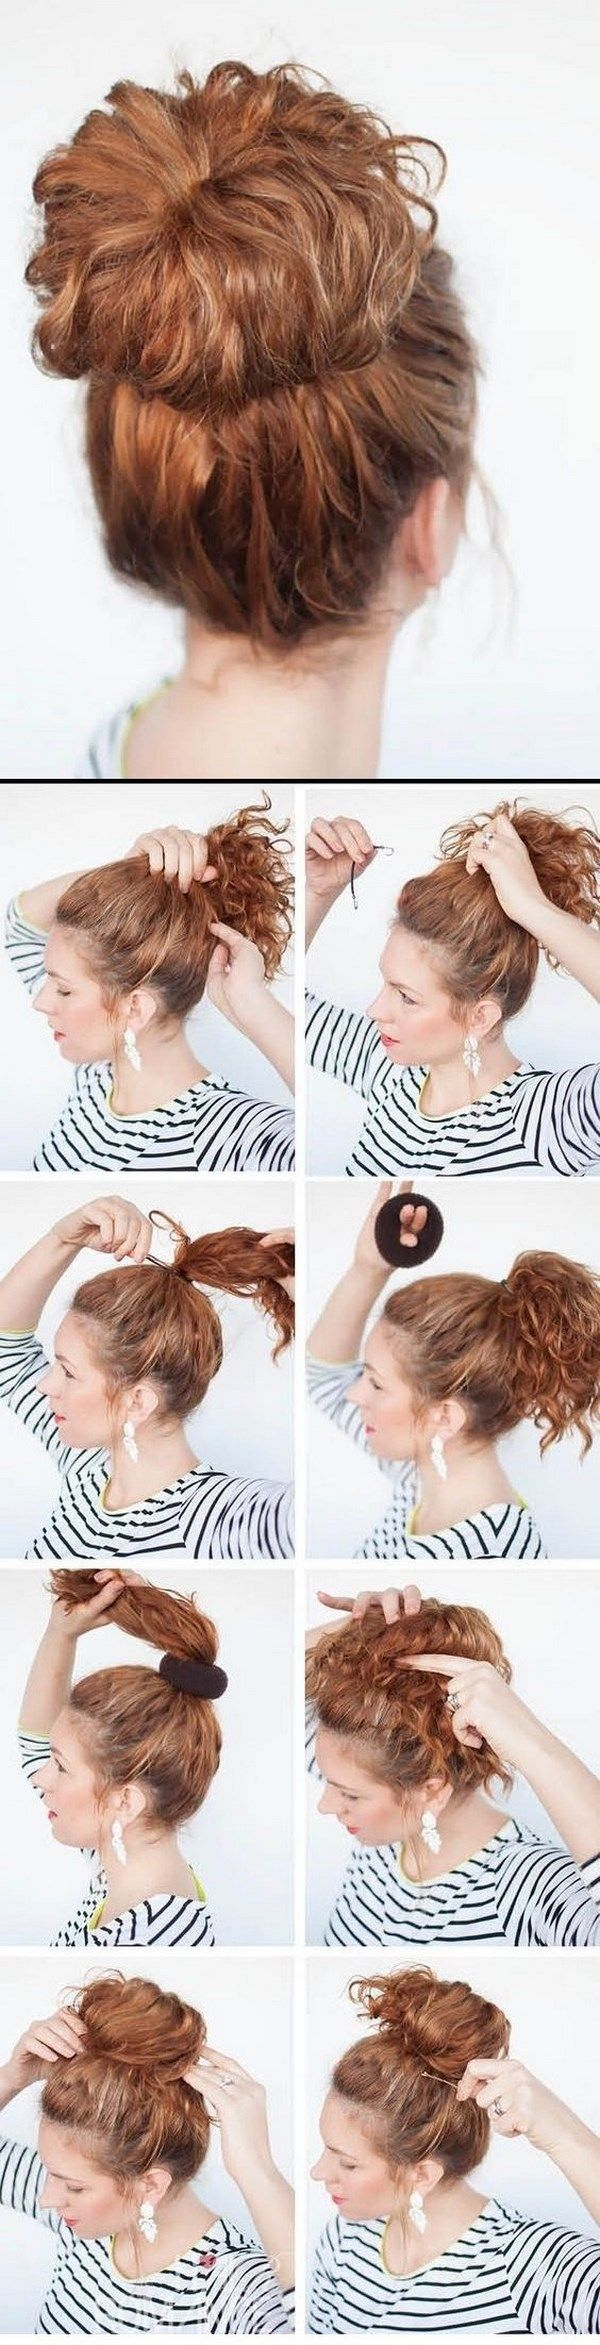 best pelo images on pinterest hair cut hairstyle ideas and